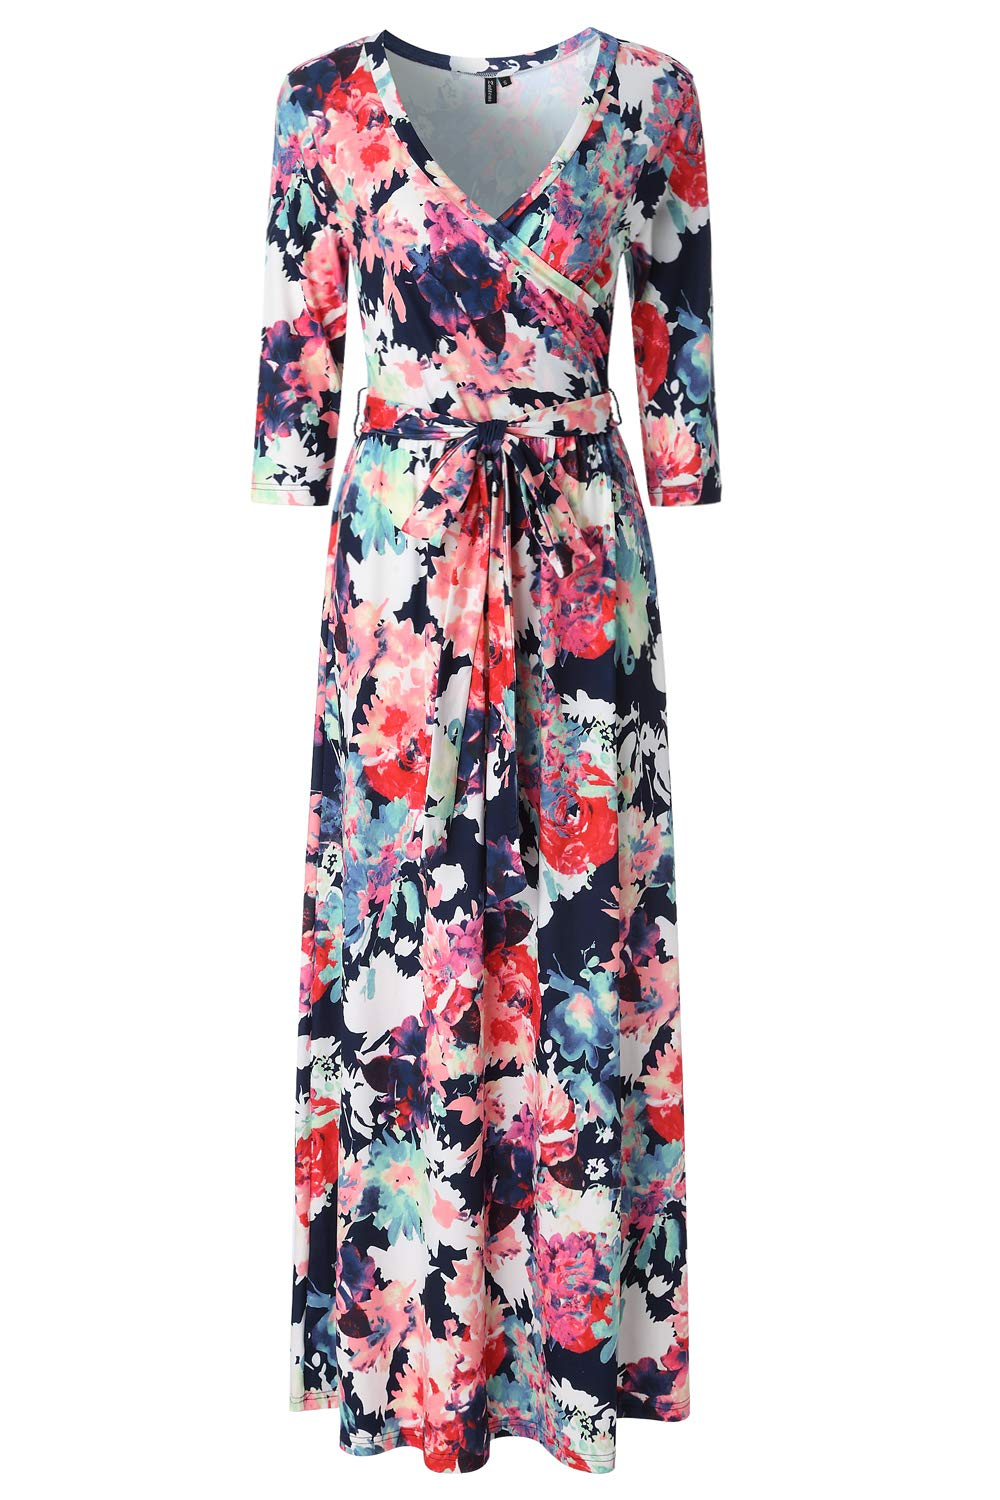 Zattcas Womens 3/4 Sleeve Floral Print Faux Wrap Long Maxi Dress with Belt (X-Large, Navy Multi)